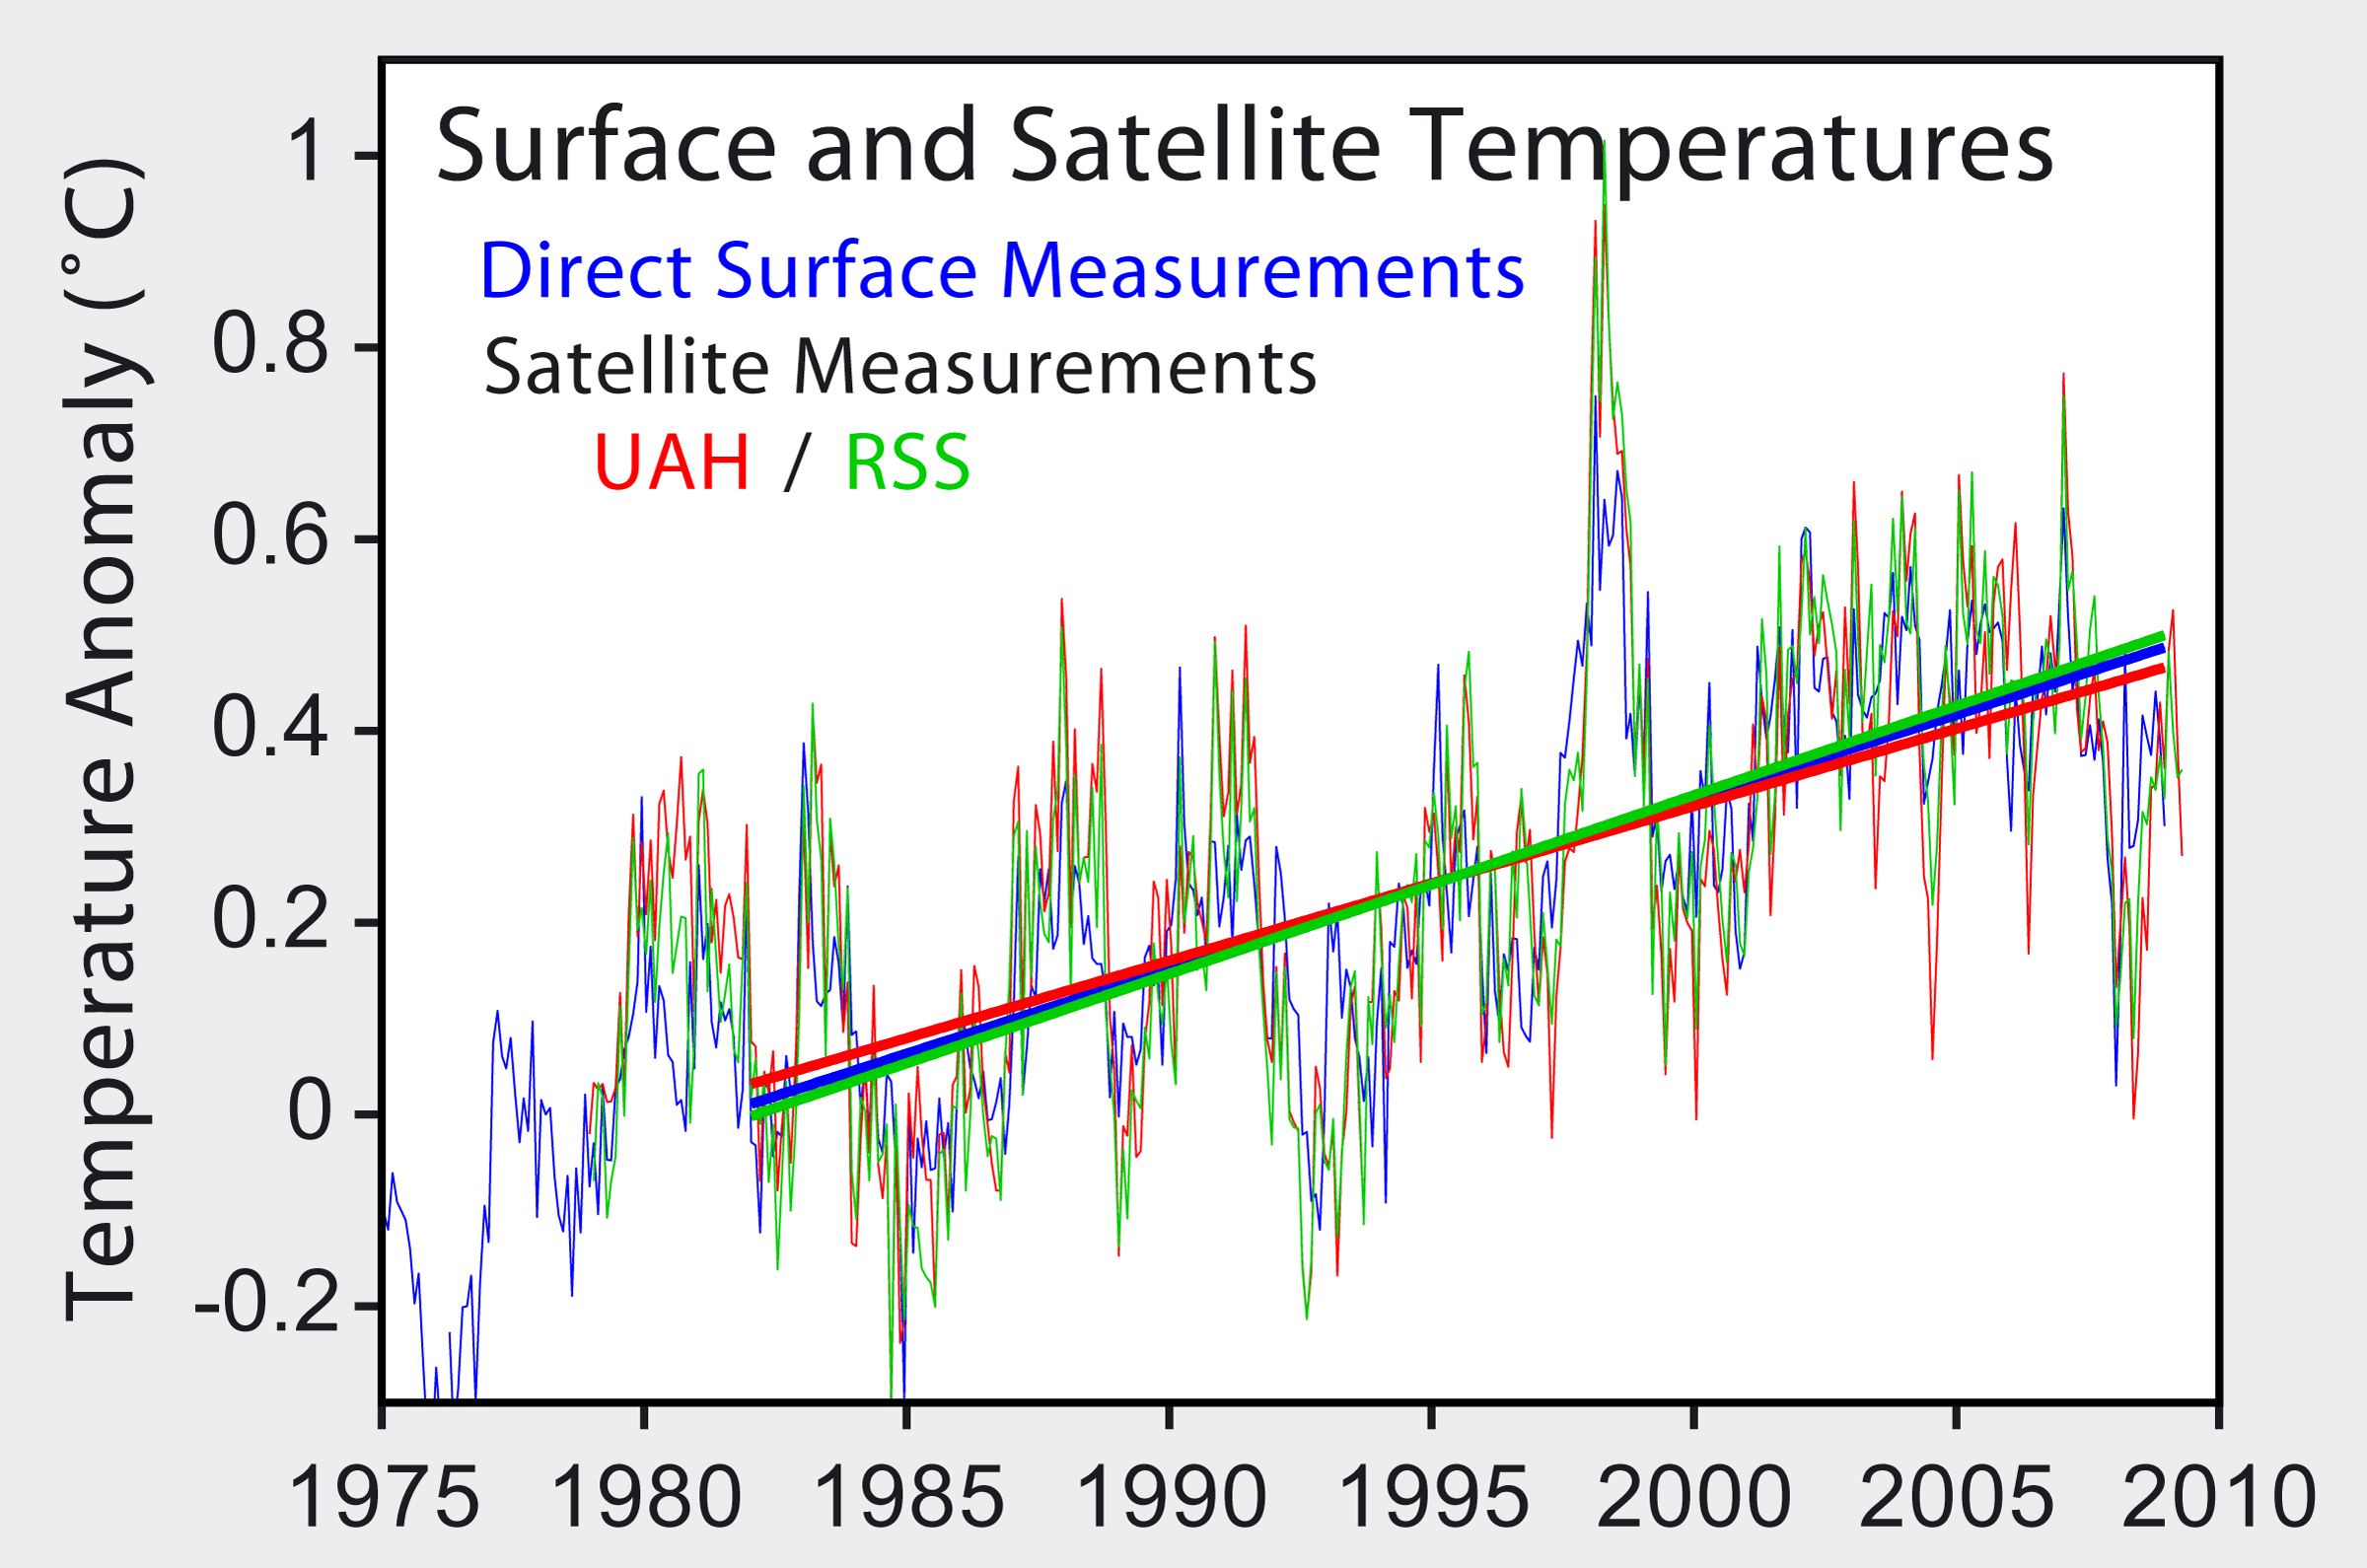 Temperature trends of the troposphere now match well with the surface based trend.